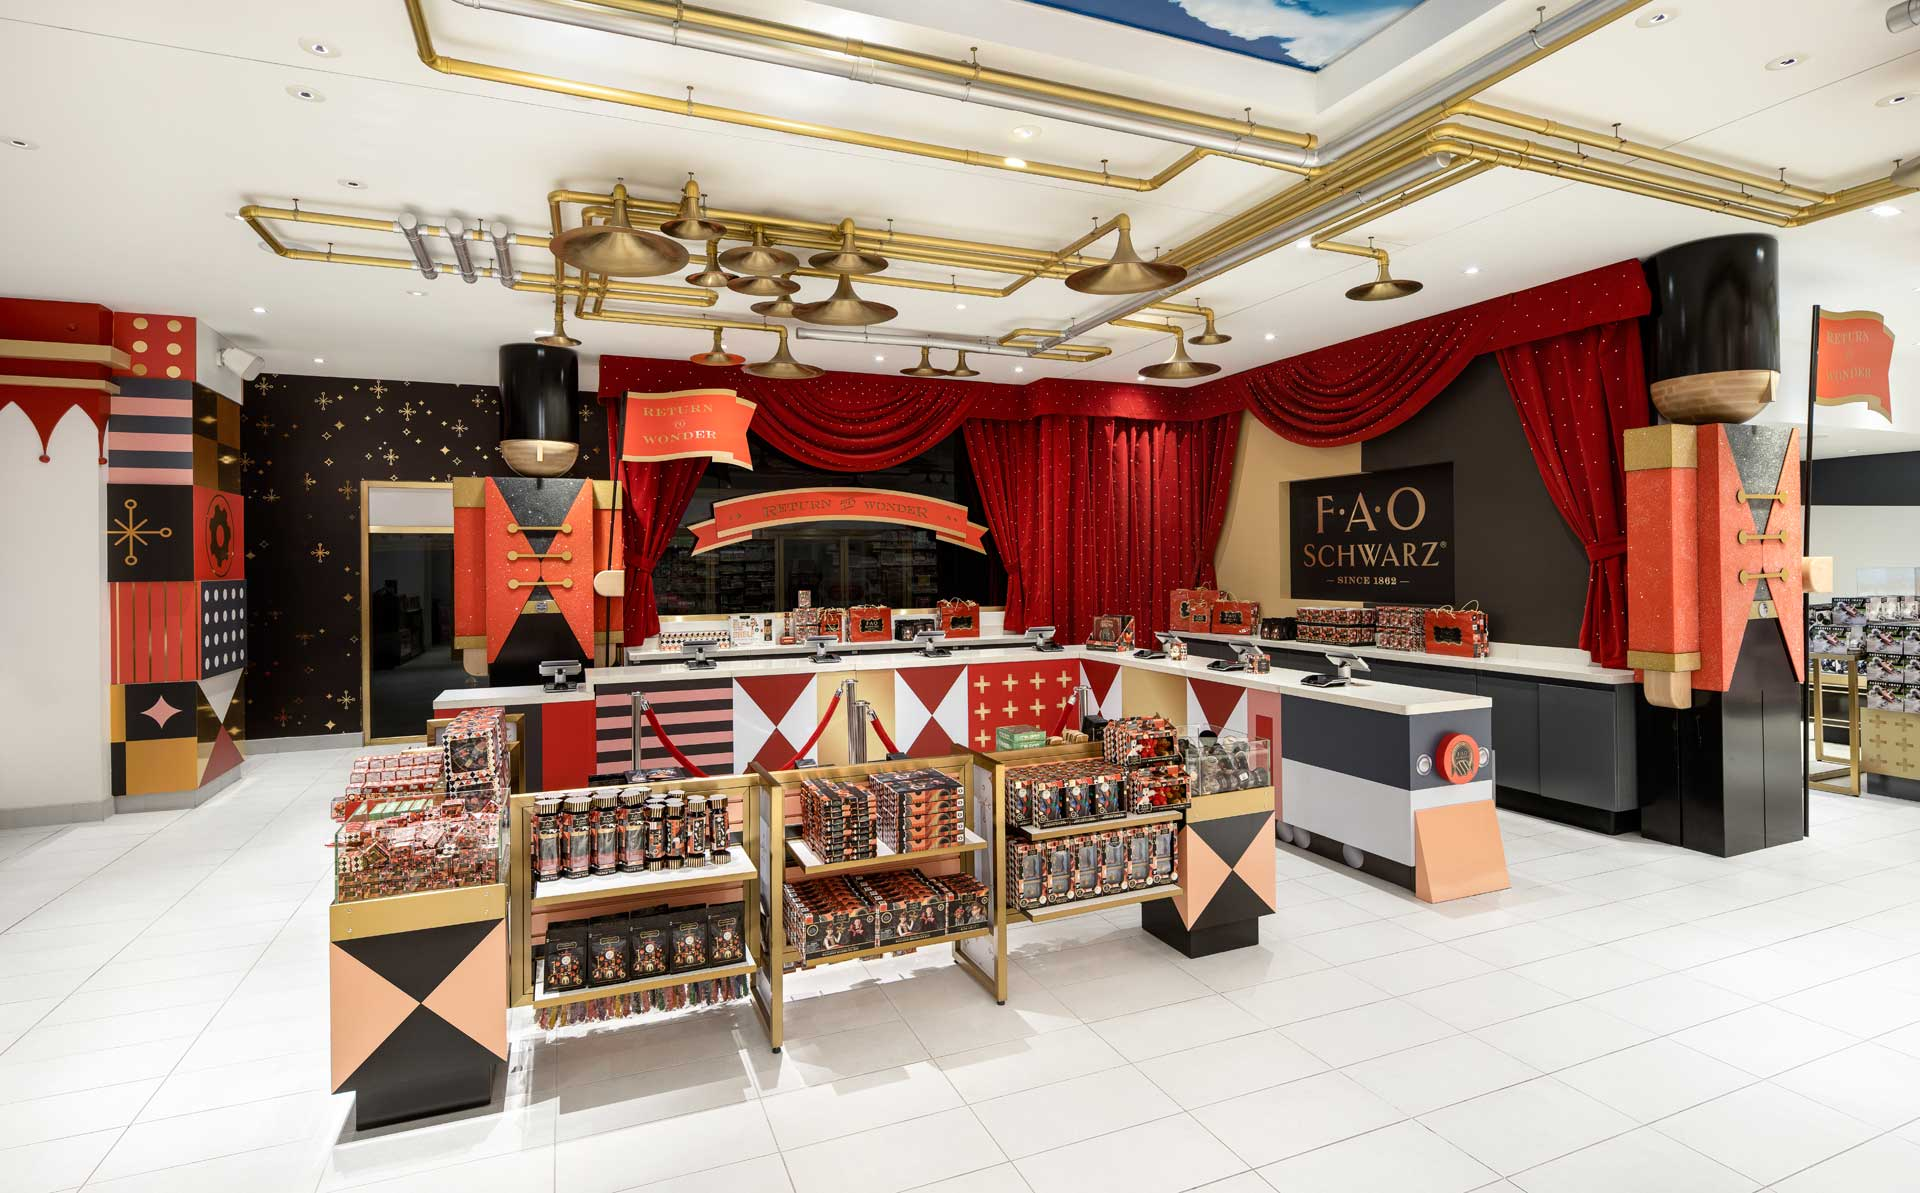 colourful festive interior of fao schwarz toy store